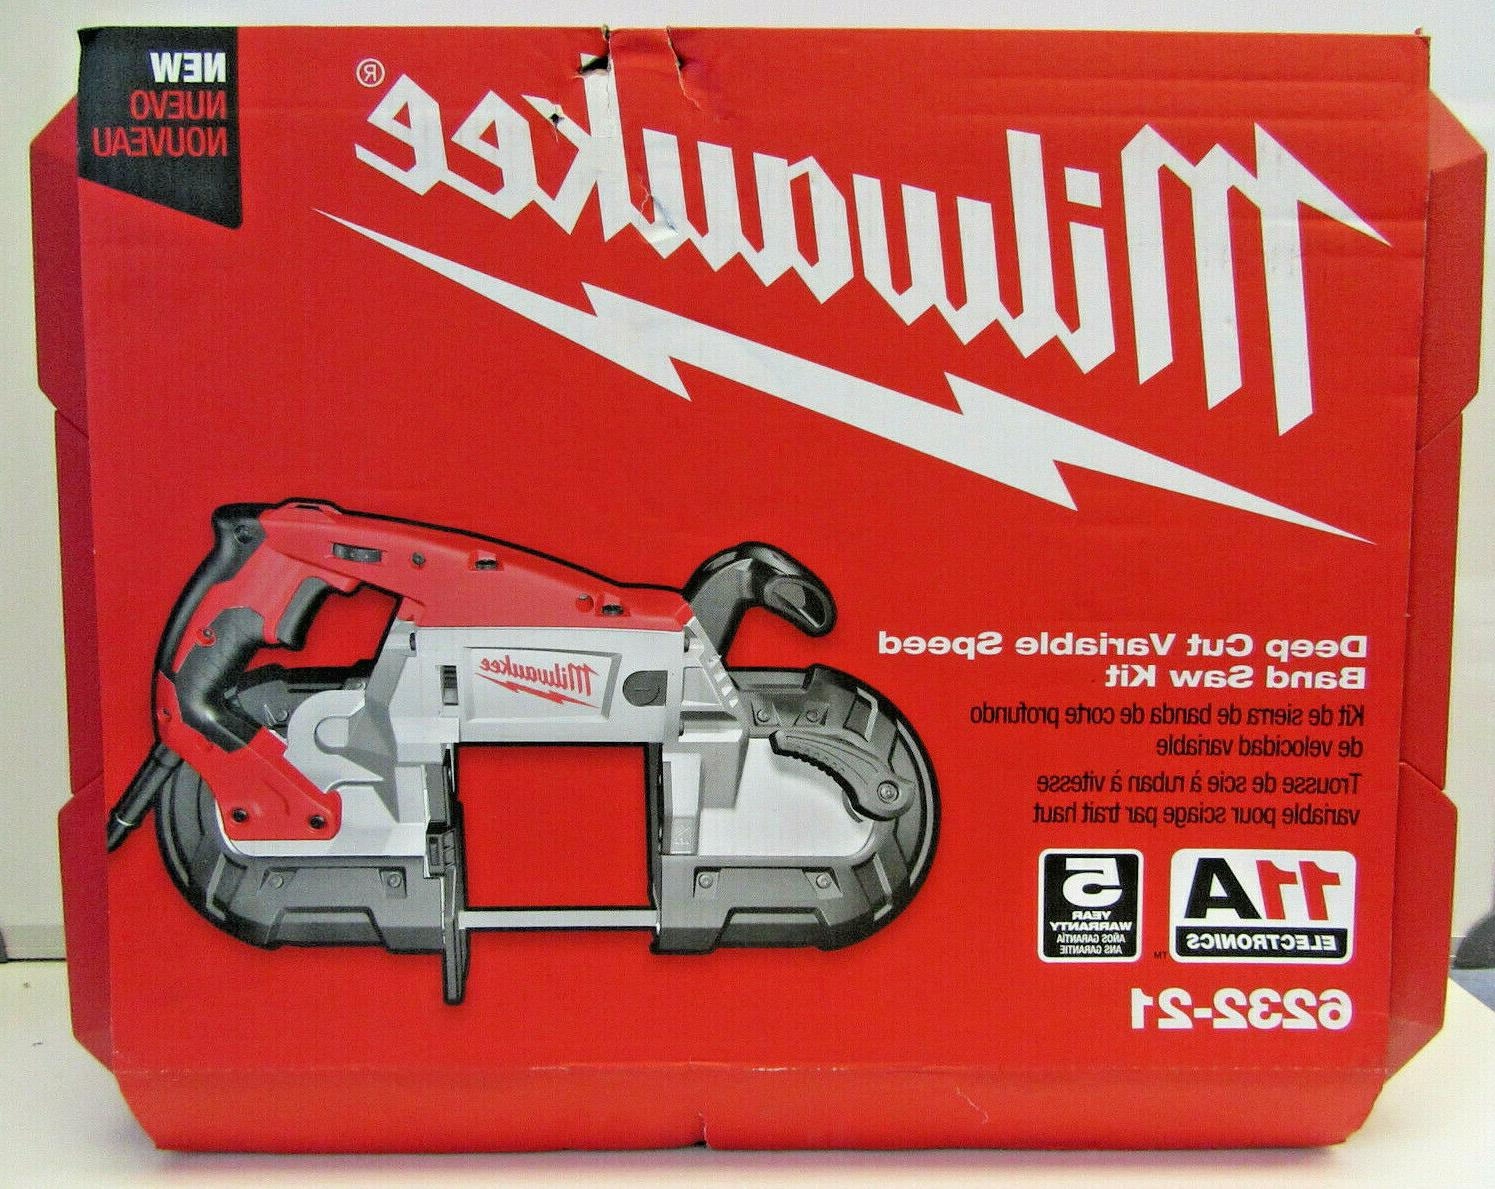 deep cut variable speed band saw kit